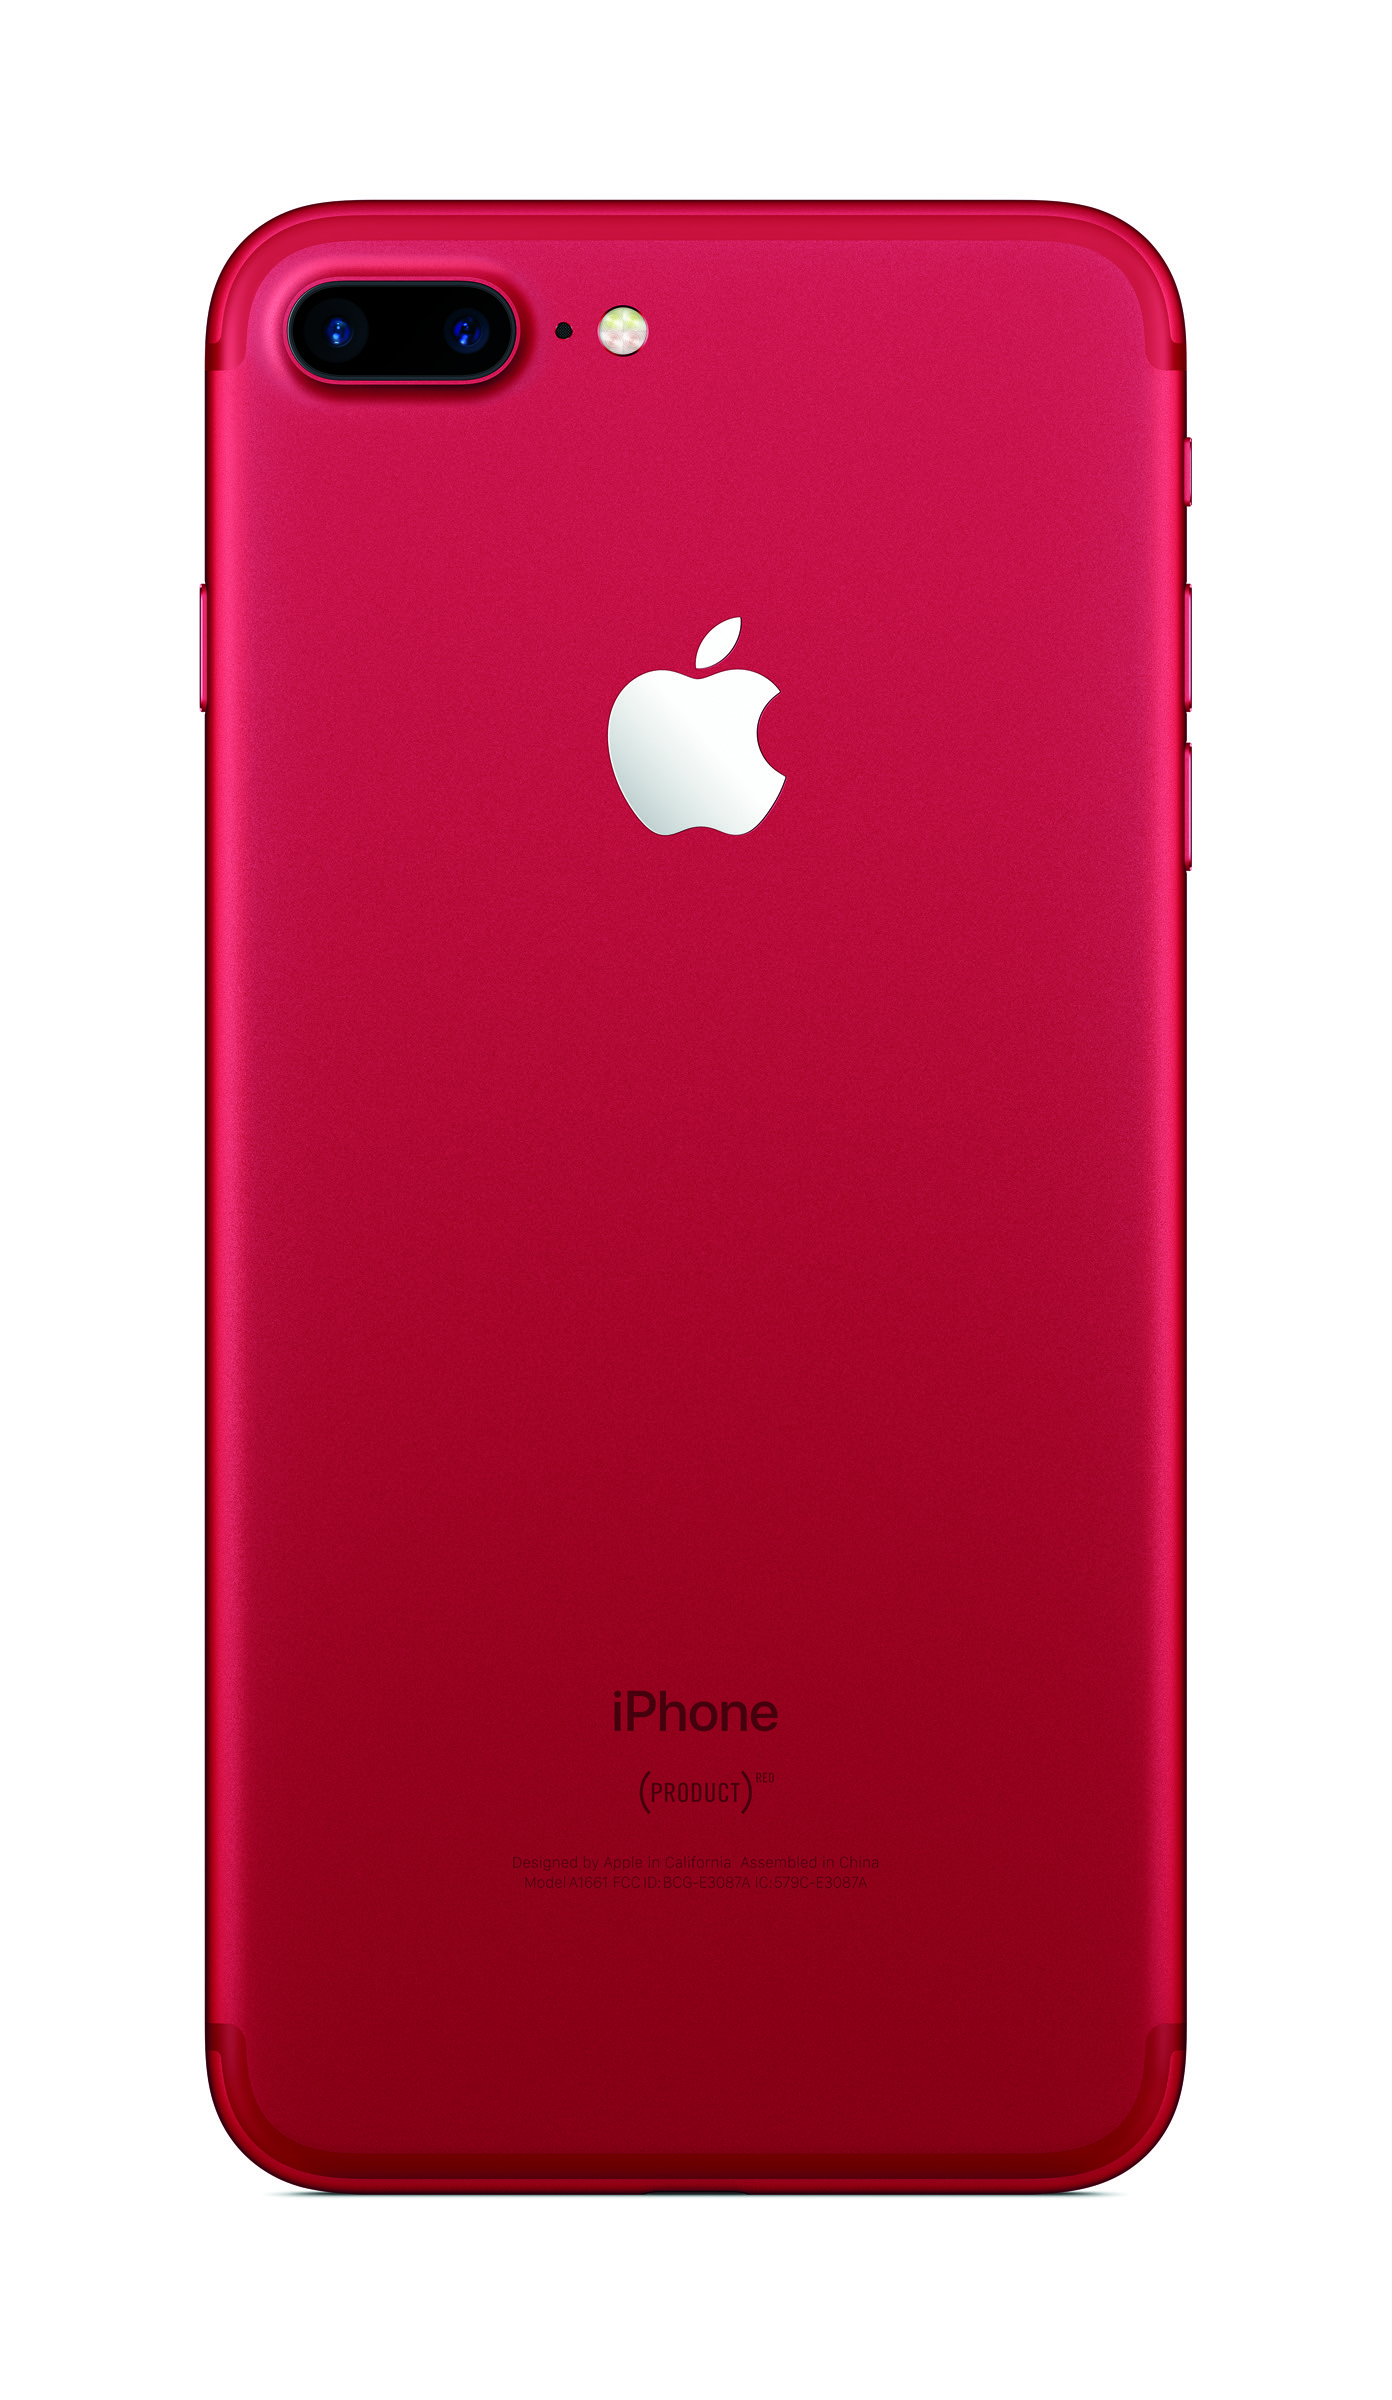 Apple Introduces iPhone 7 & iPhone 7 Plus (PRODUCT)RED ...